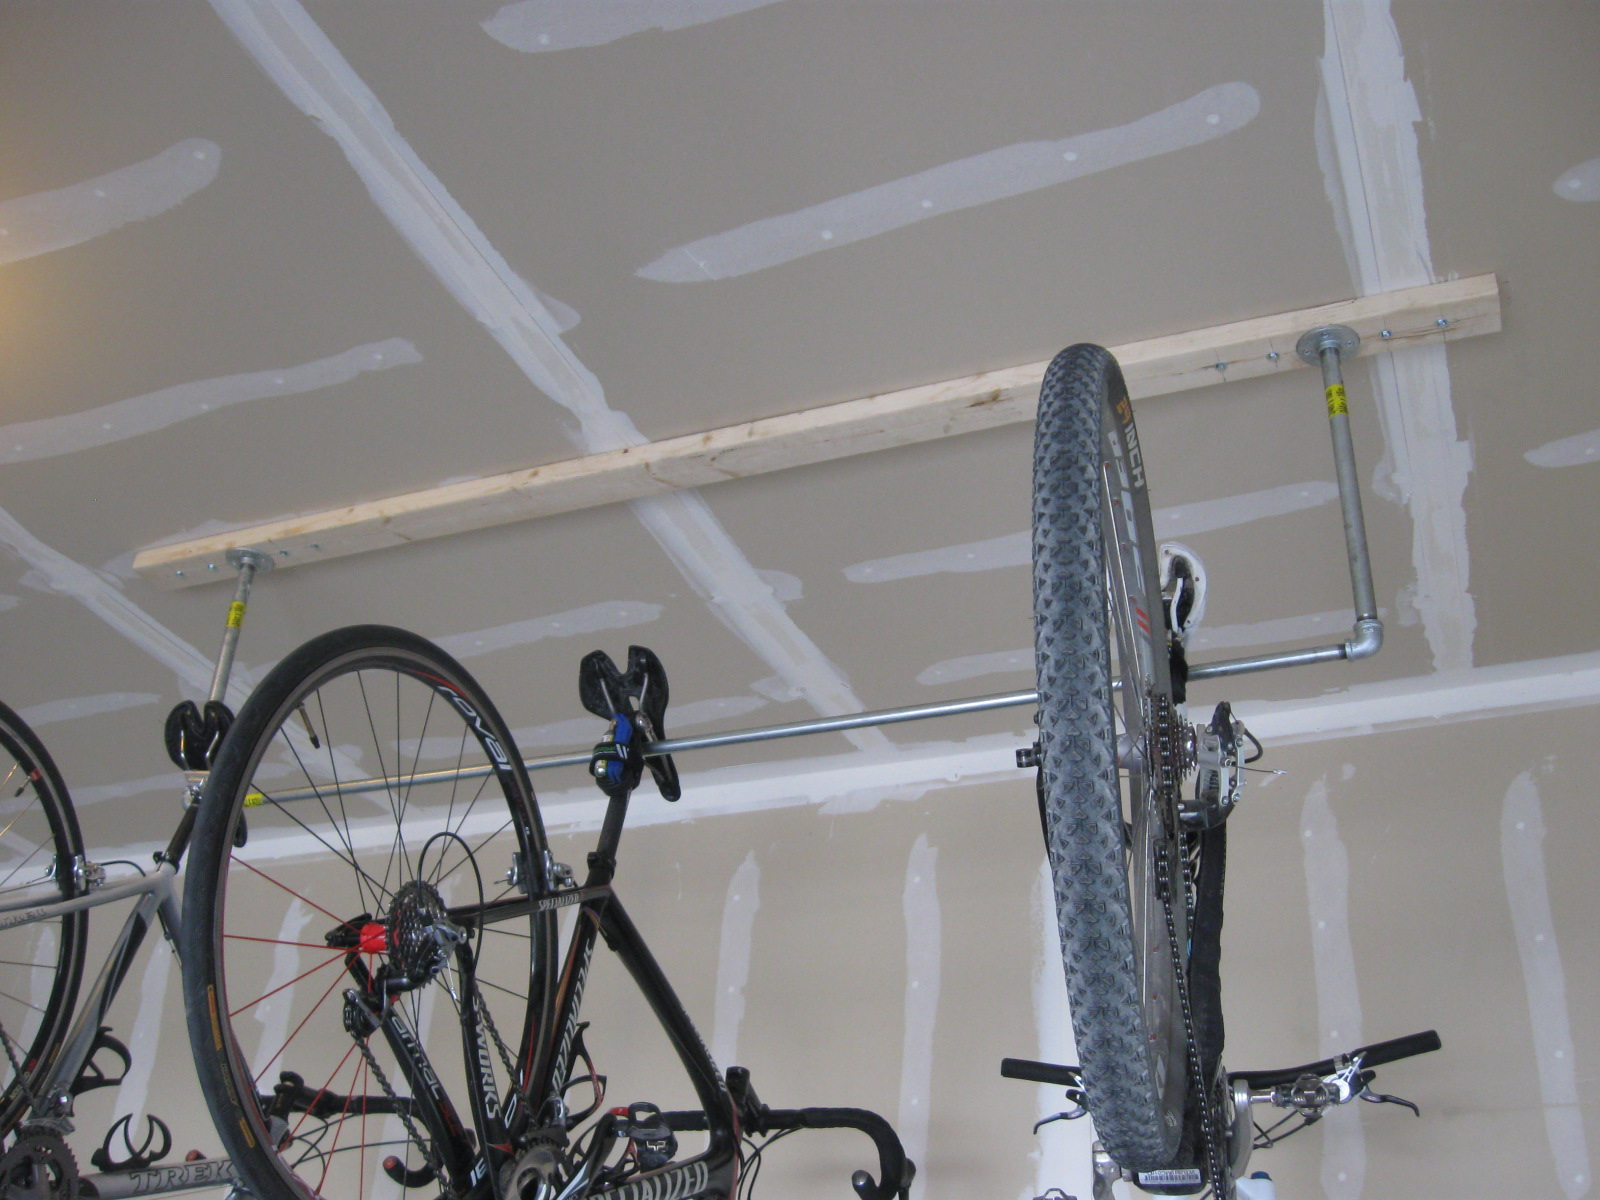 So Little Time So Much To Explore Garage Ceiling Bike Rack Make Your Own Beautiful  HD Wallpapers, Images Over 1000+ [ralydesign.ml]